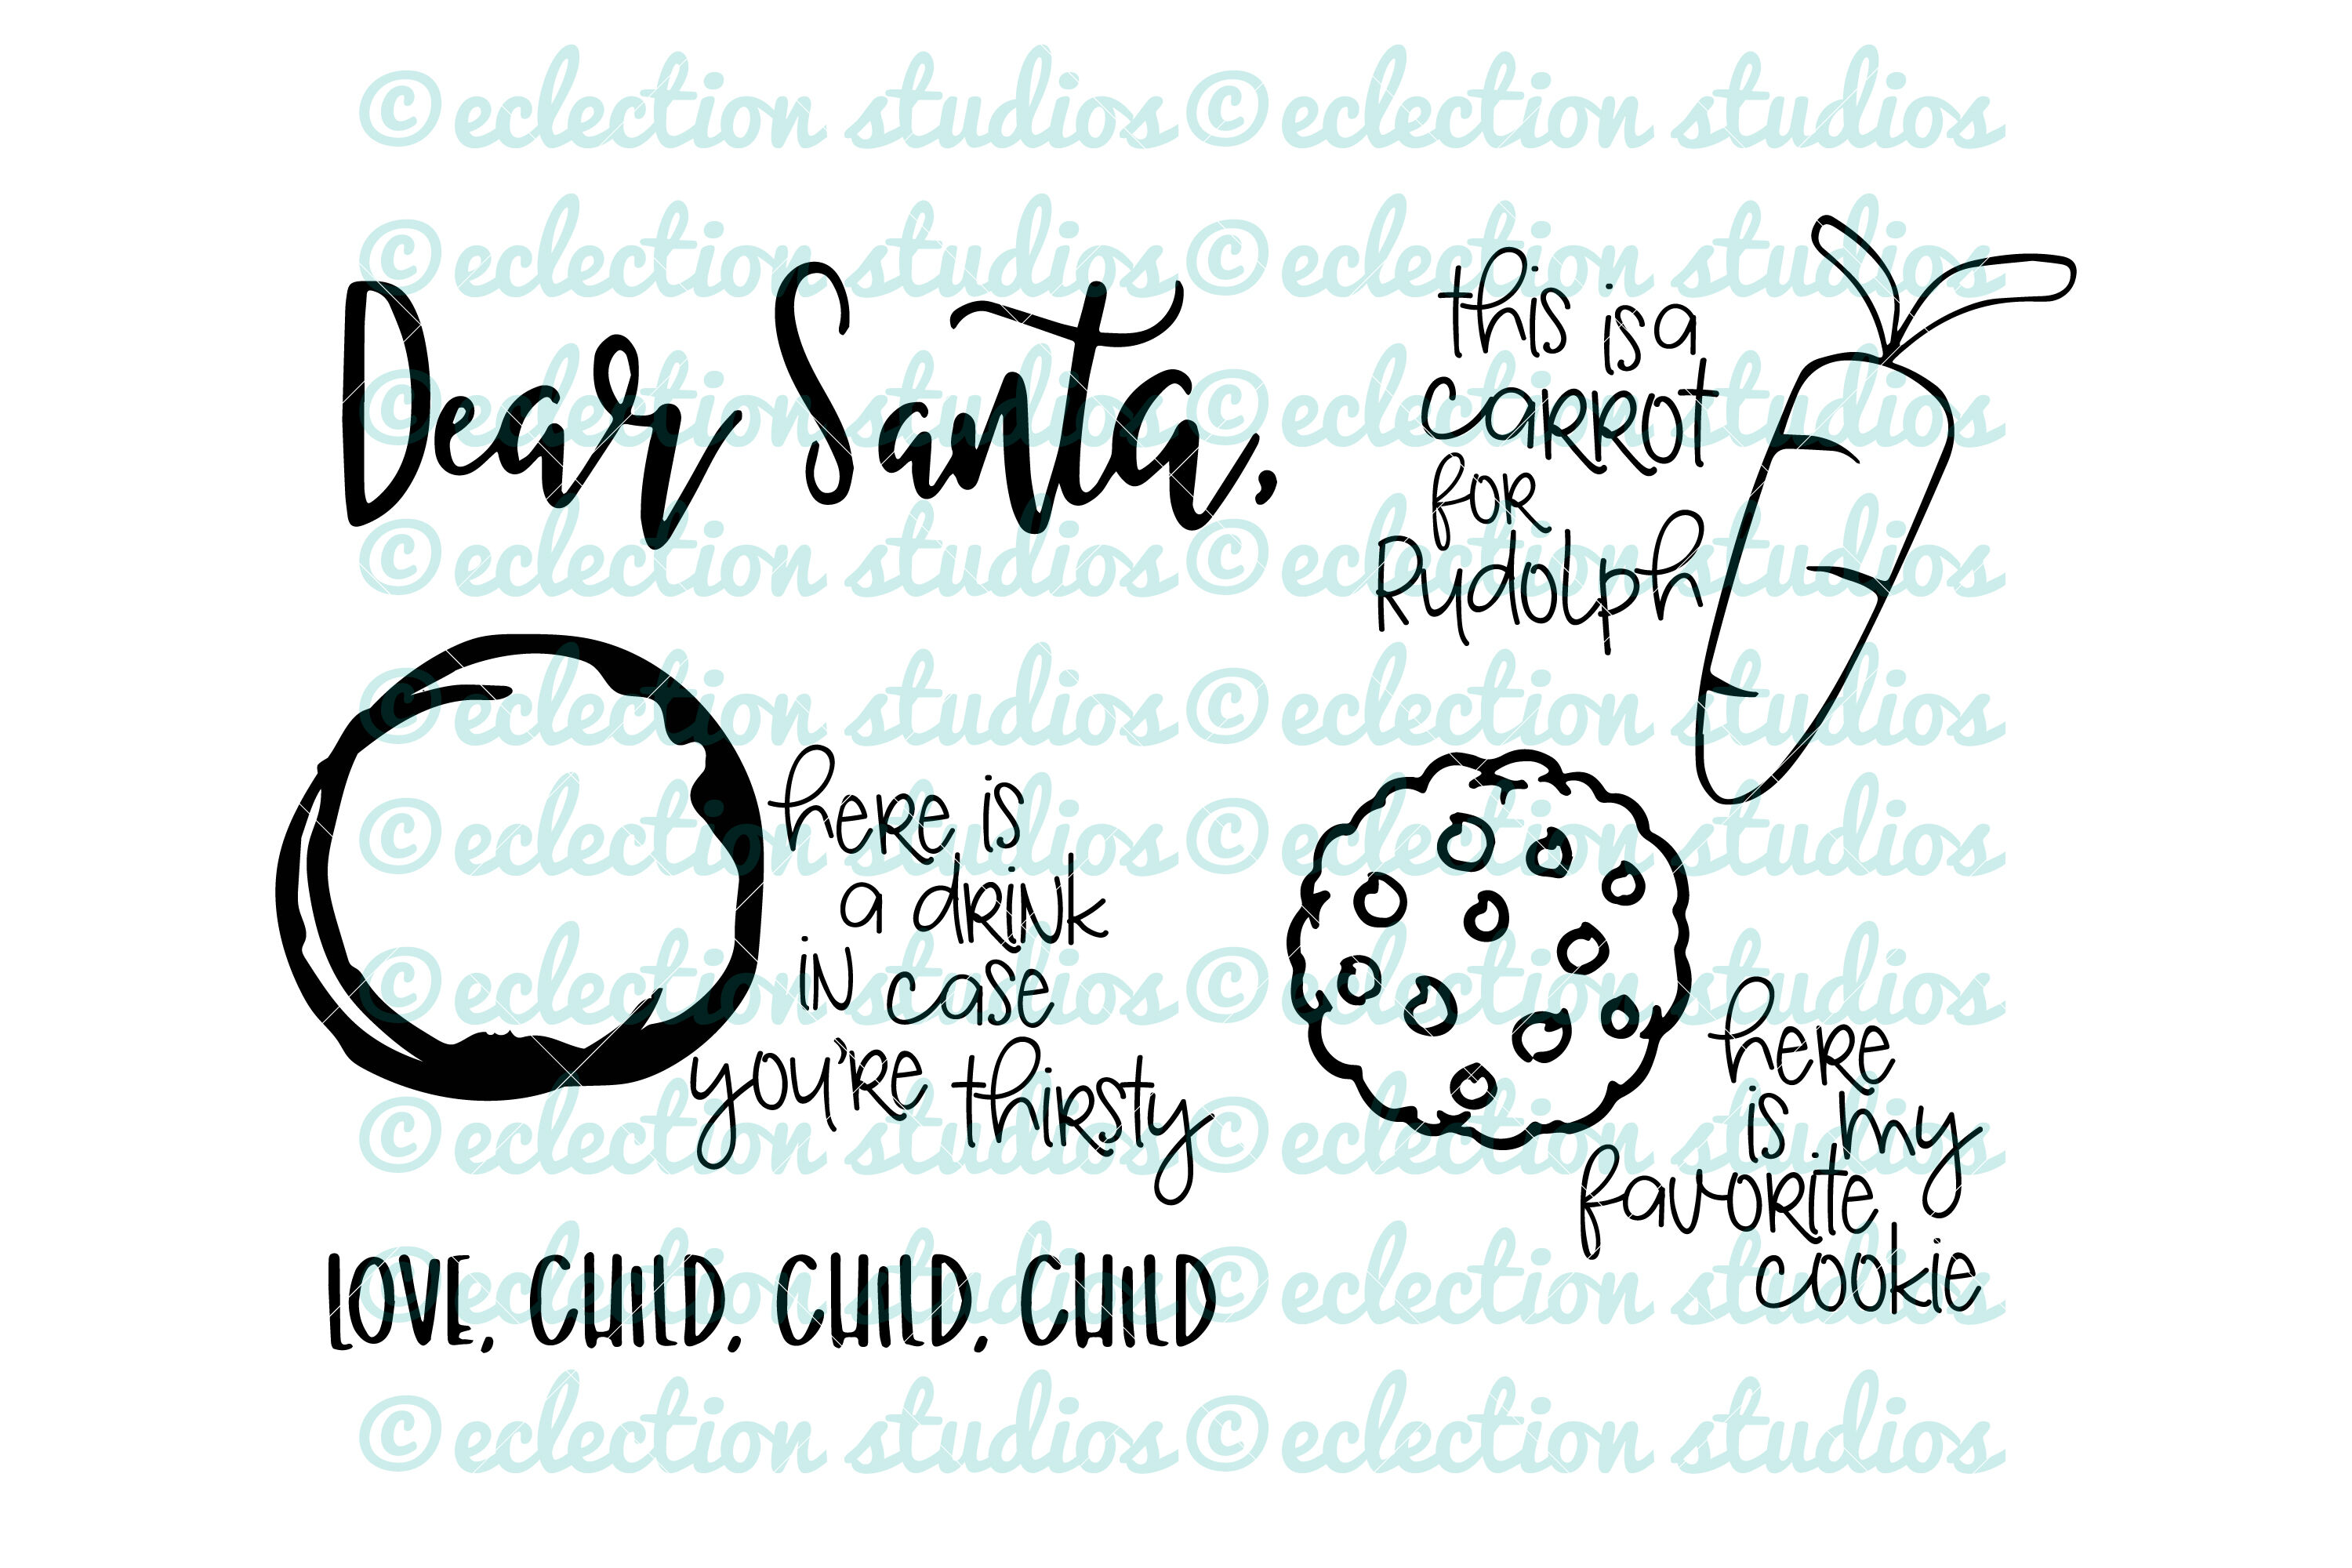 Santa Tray Svg Cookies For Santa Dear Santa By Eclectionstudios